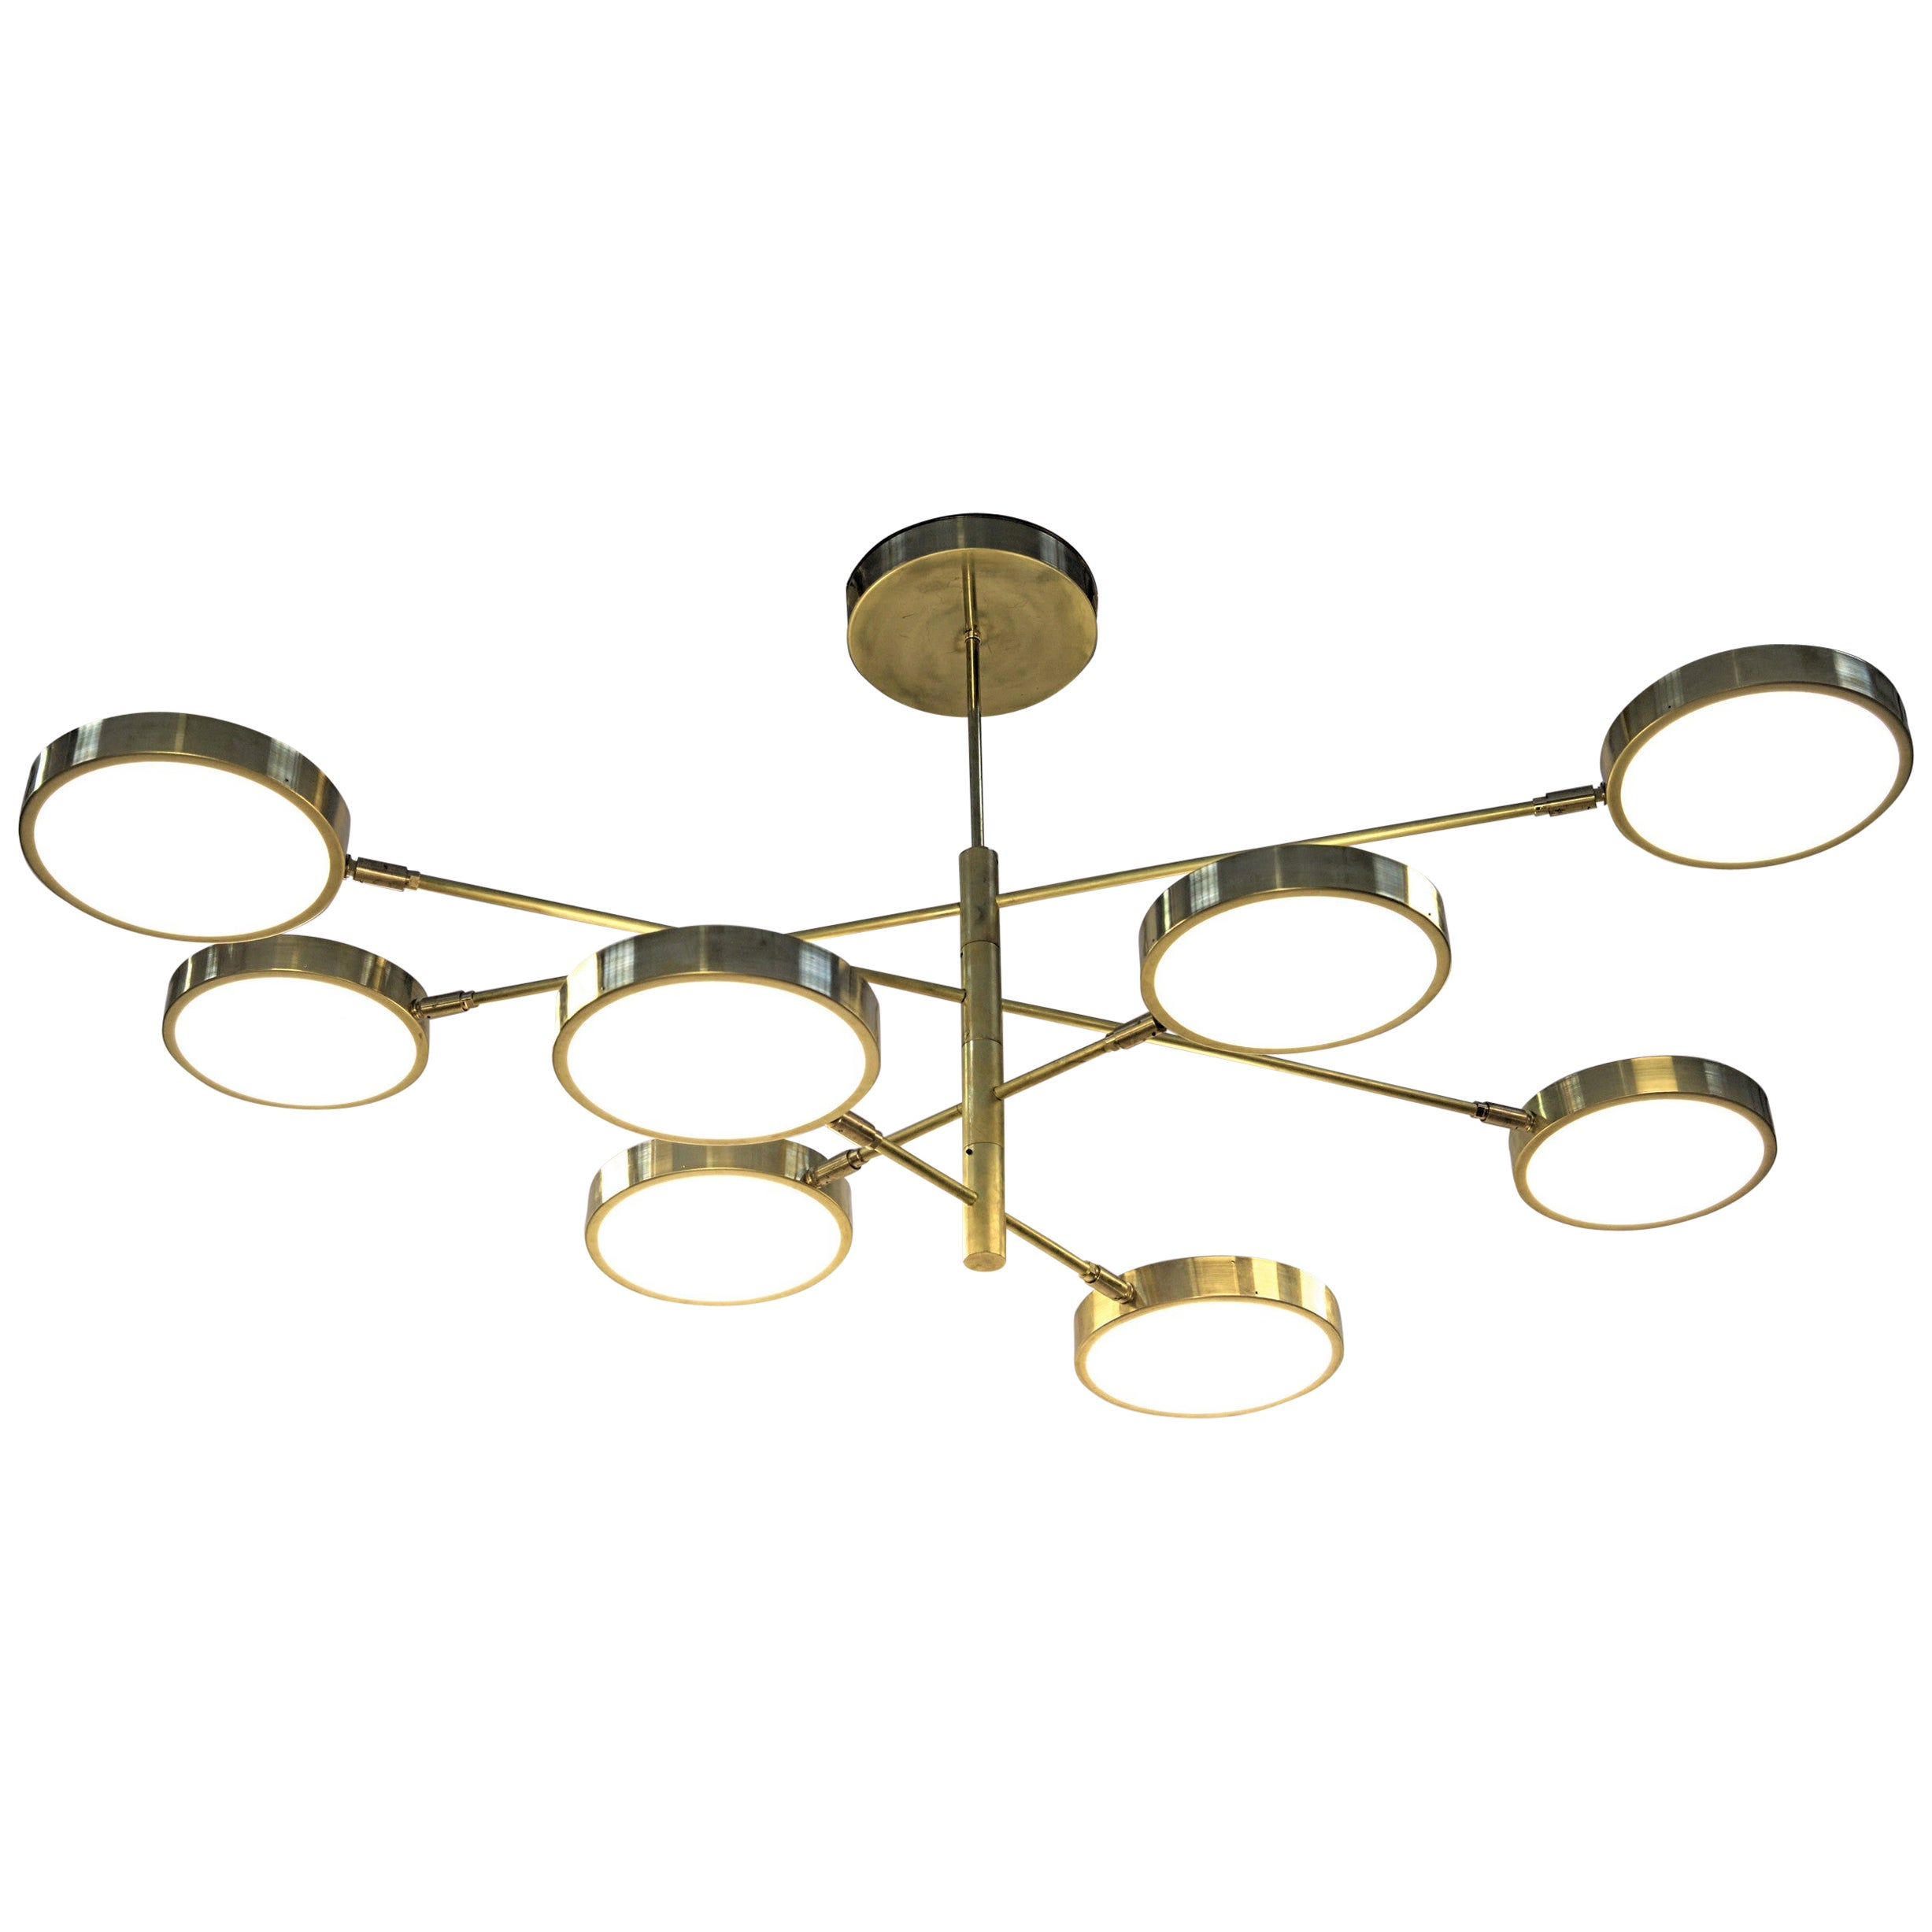 Orbitale Planetario Brass 8 Rotating Arms Chandelier, Featured for Dining Table